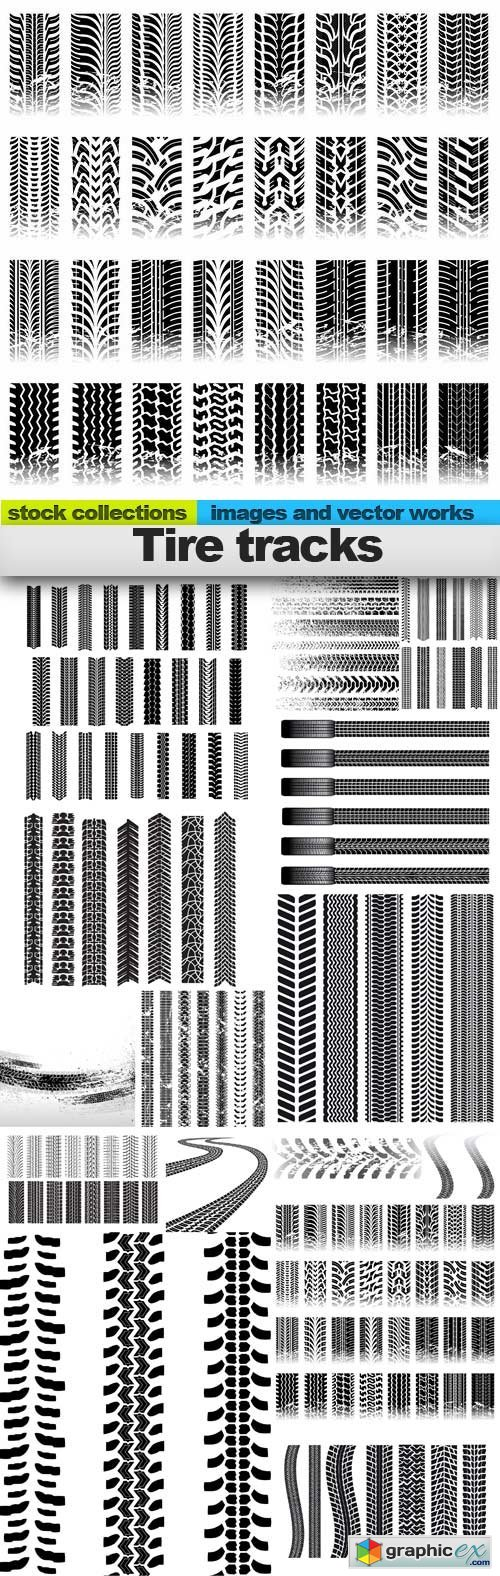 Tire tracks, 15 x EPS